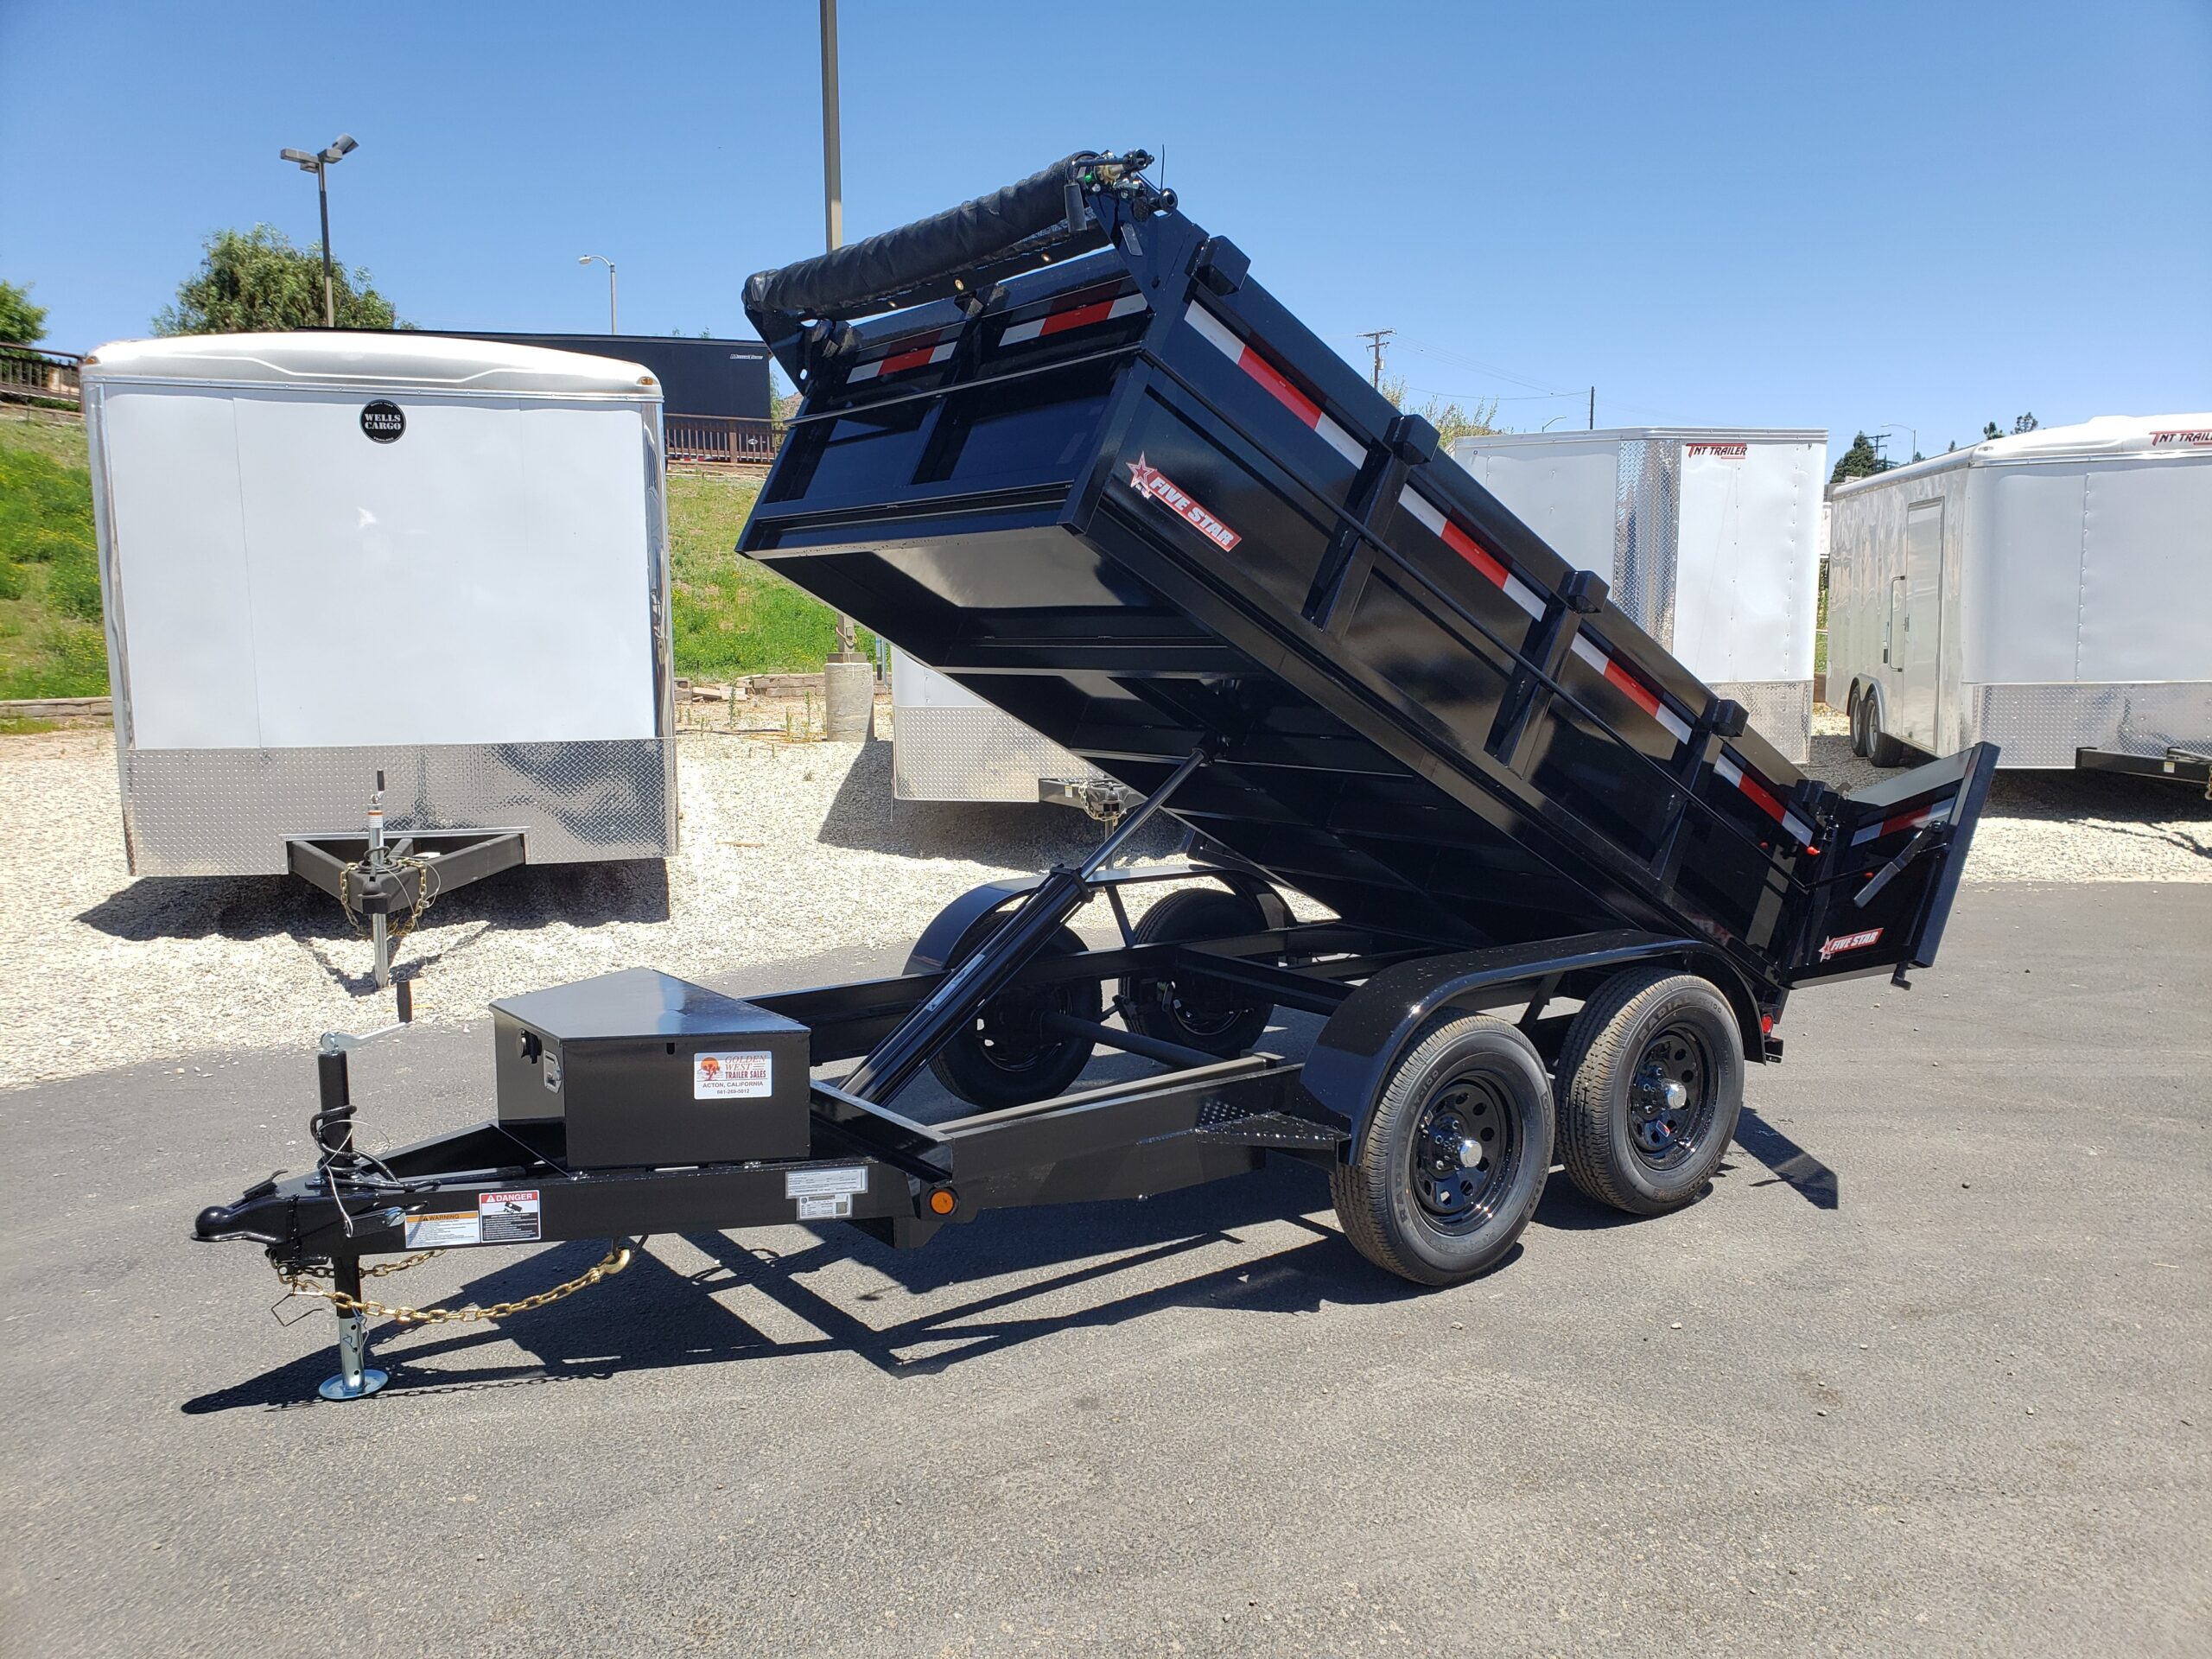 Five Star 5x10 7K Dump2ft - Driver side front 3/4 view dump bed up